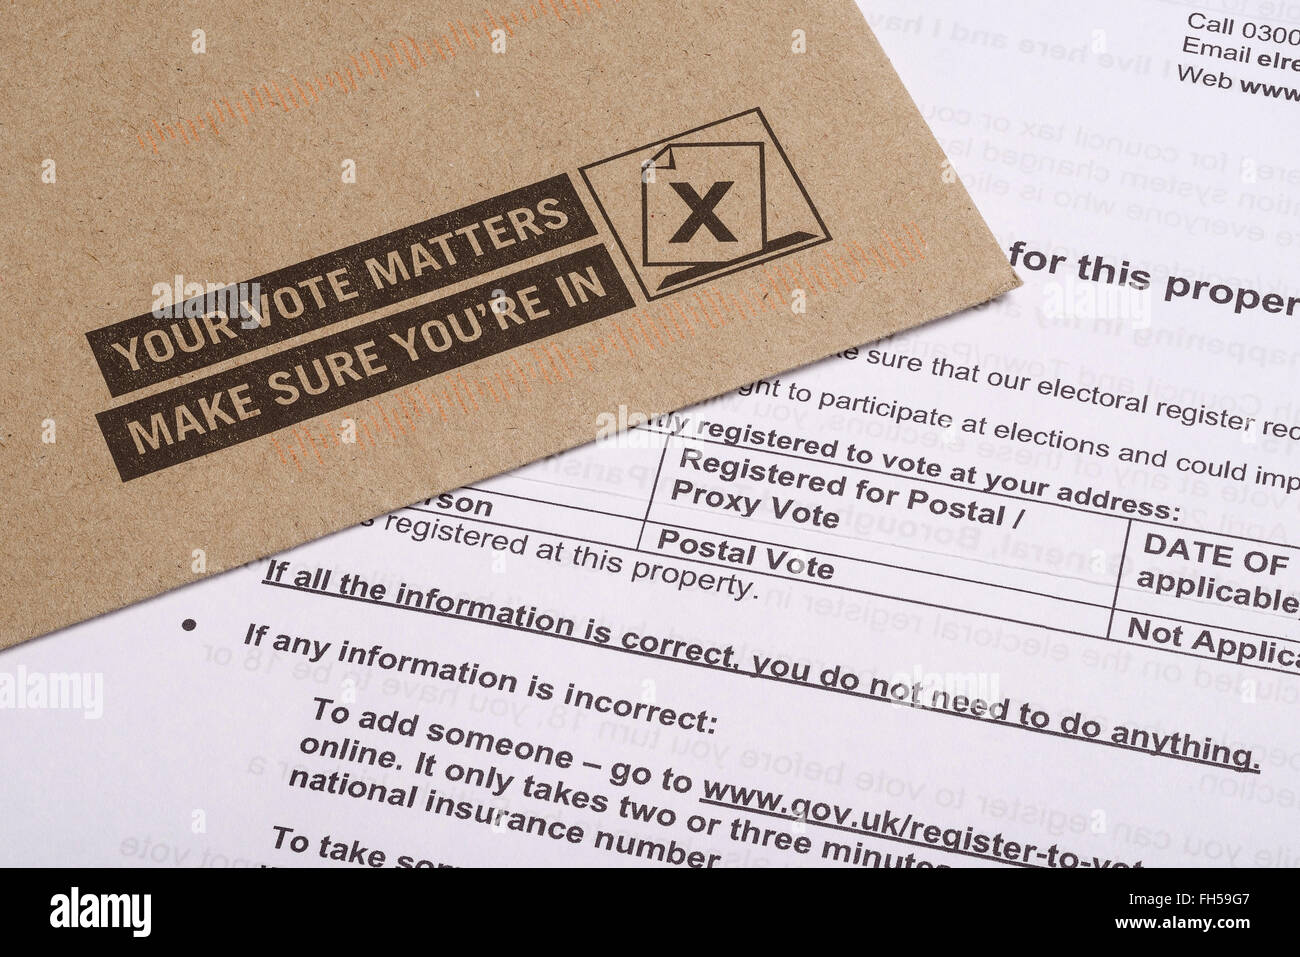 UK application form to register for a postal vote in forthcoming elections - Stock Image